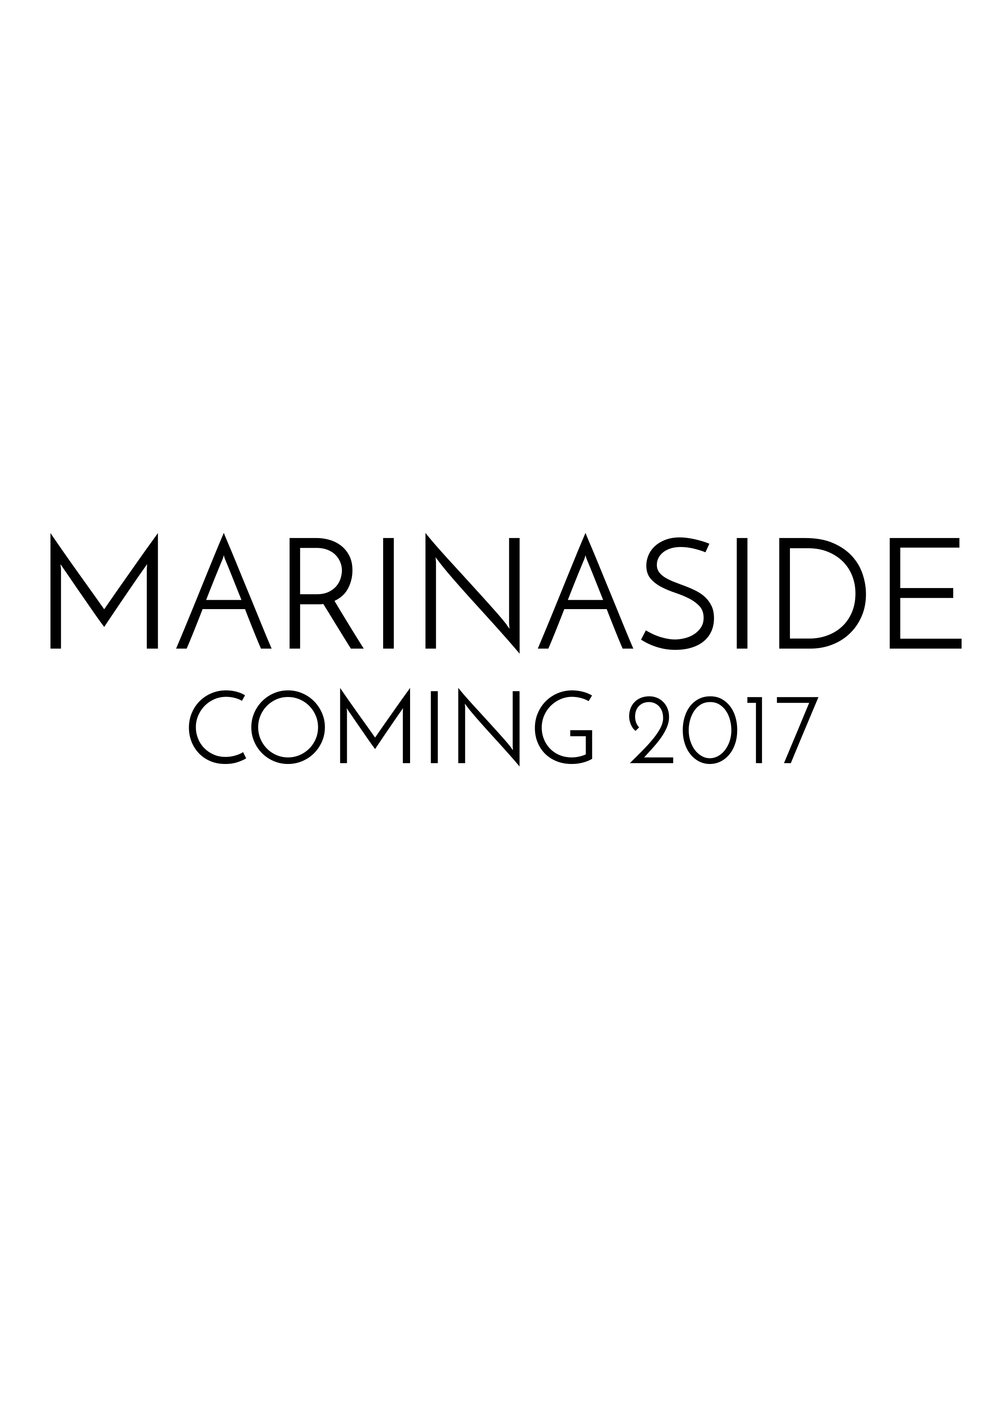 Marinaside coming 2017.jpg